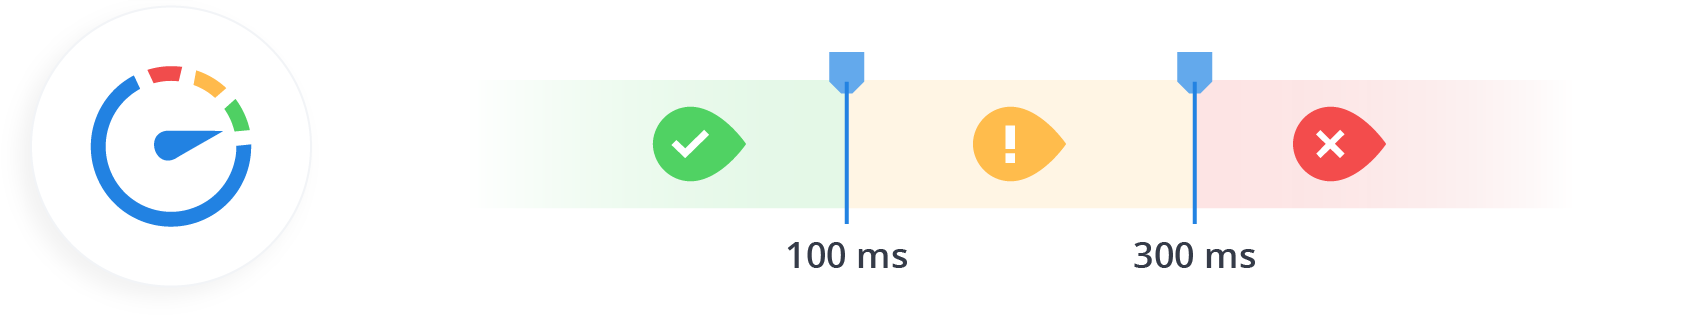 LCP is a user experience metric